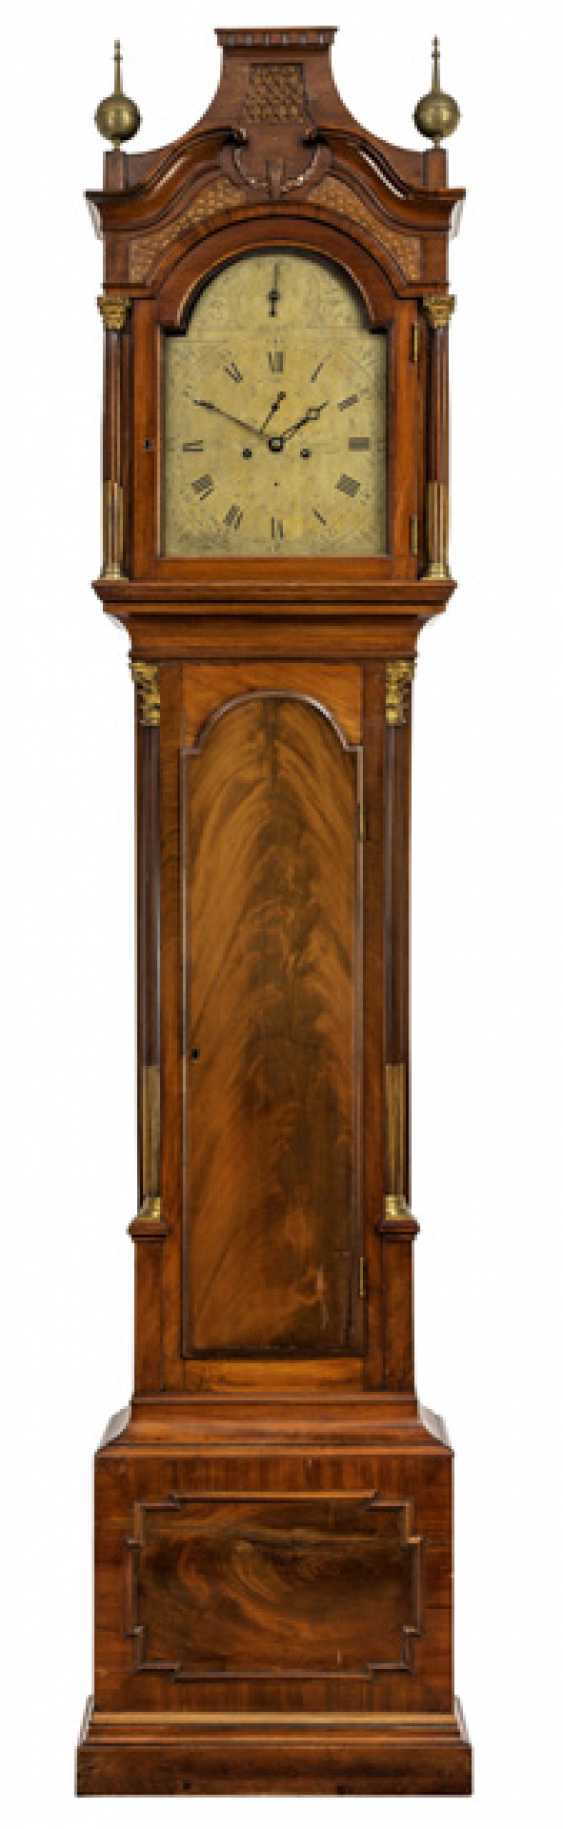 Floor grandfather clock. On the dial, Robert Rentch London, England called to the 1800's - photo 1